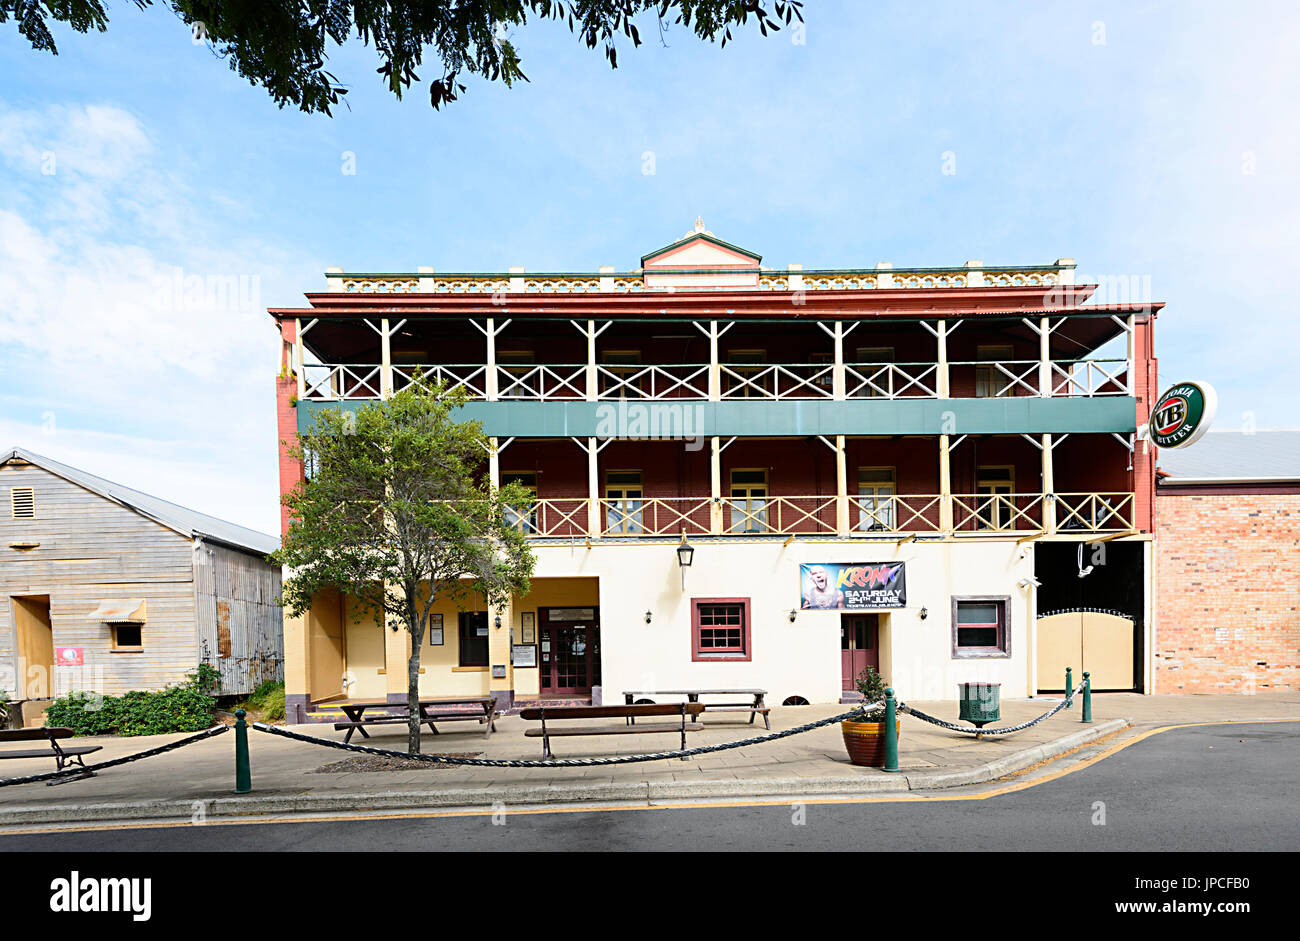 Historic building of the Criterion Hotel in Maryborough Heritage Precinct, Queensland, QLD, Australia - Stock Image